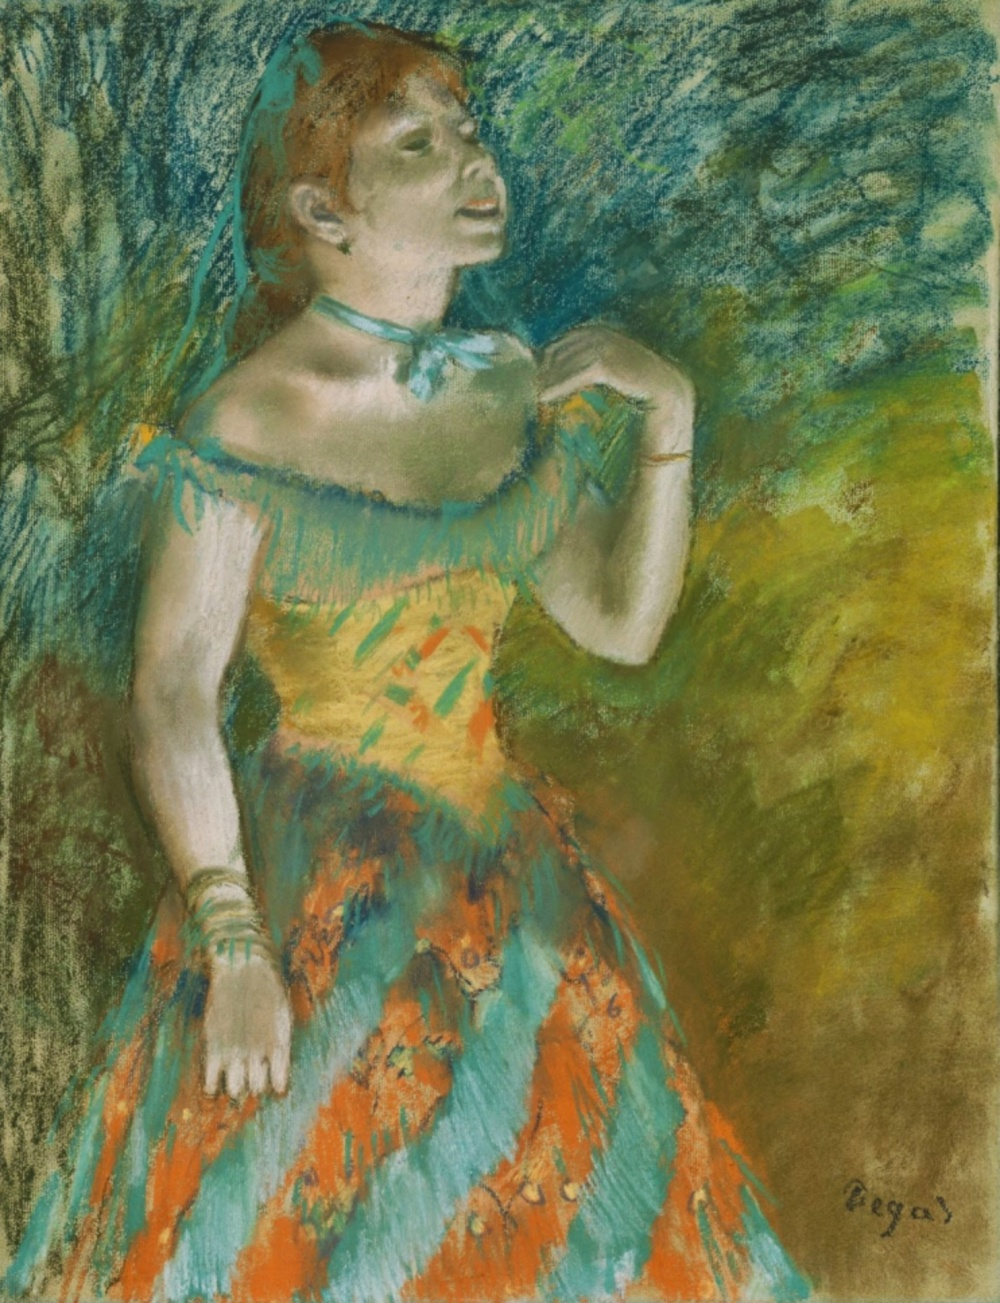 Edgar+Degas+-+The+singer+in+green,+ca+1884_3